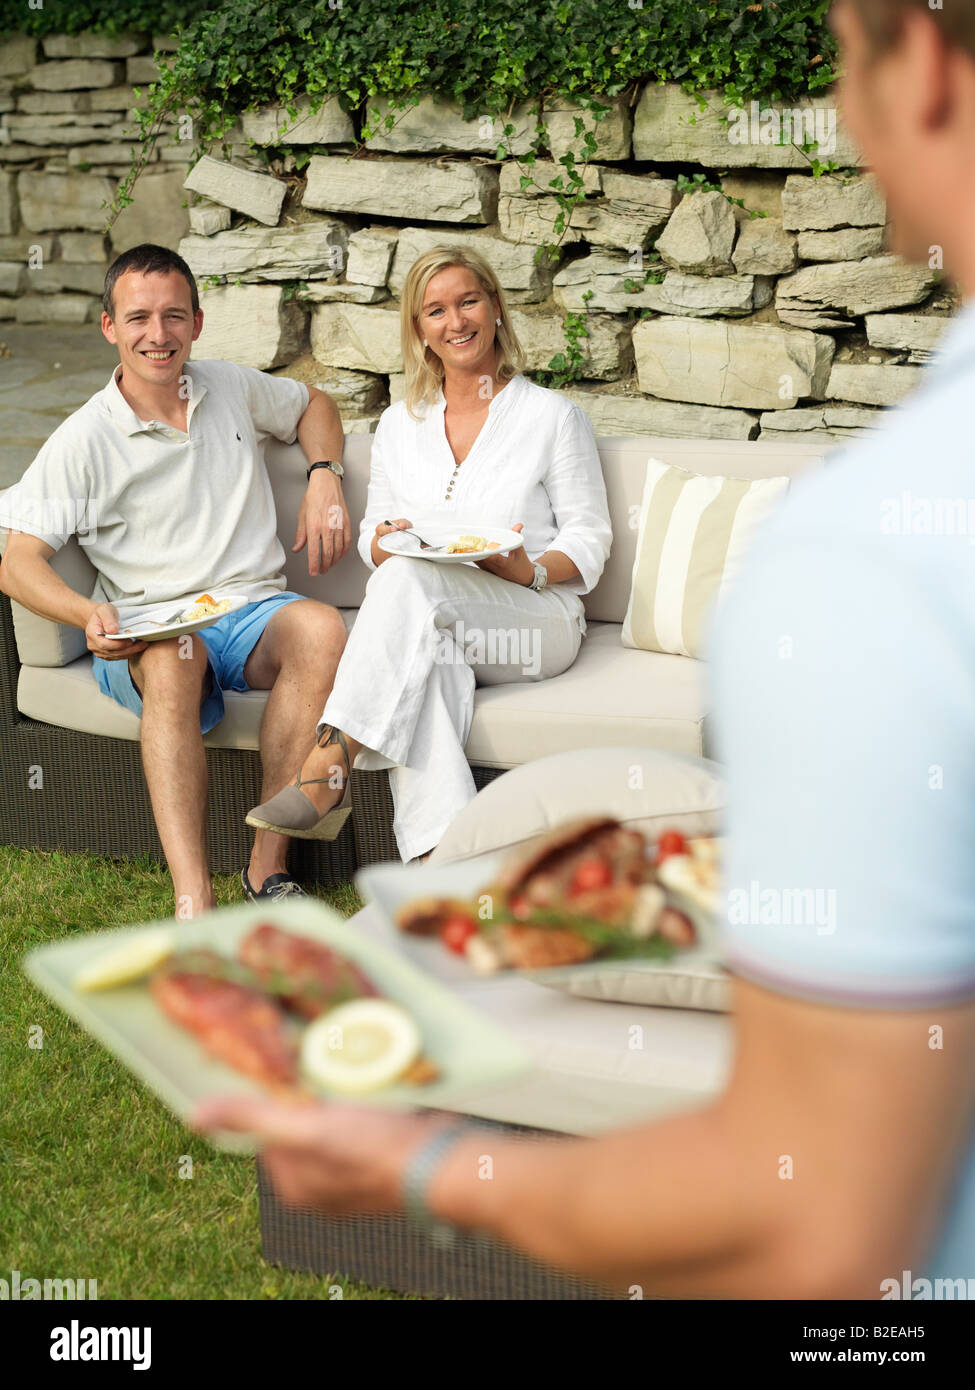 Couple looking at man carrying prepared fish of plates - Stock Image